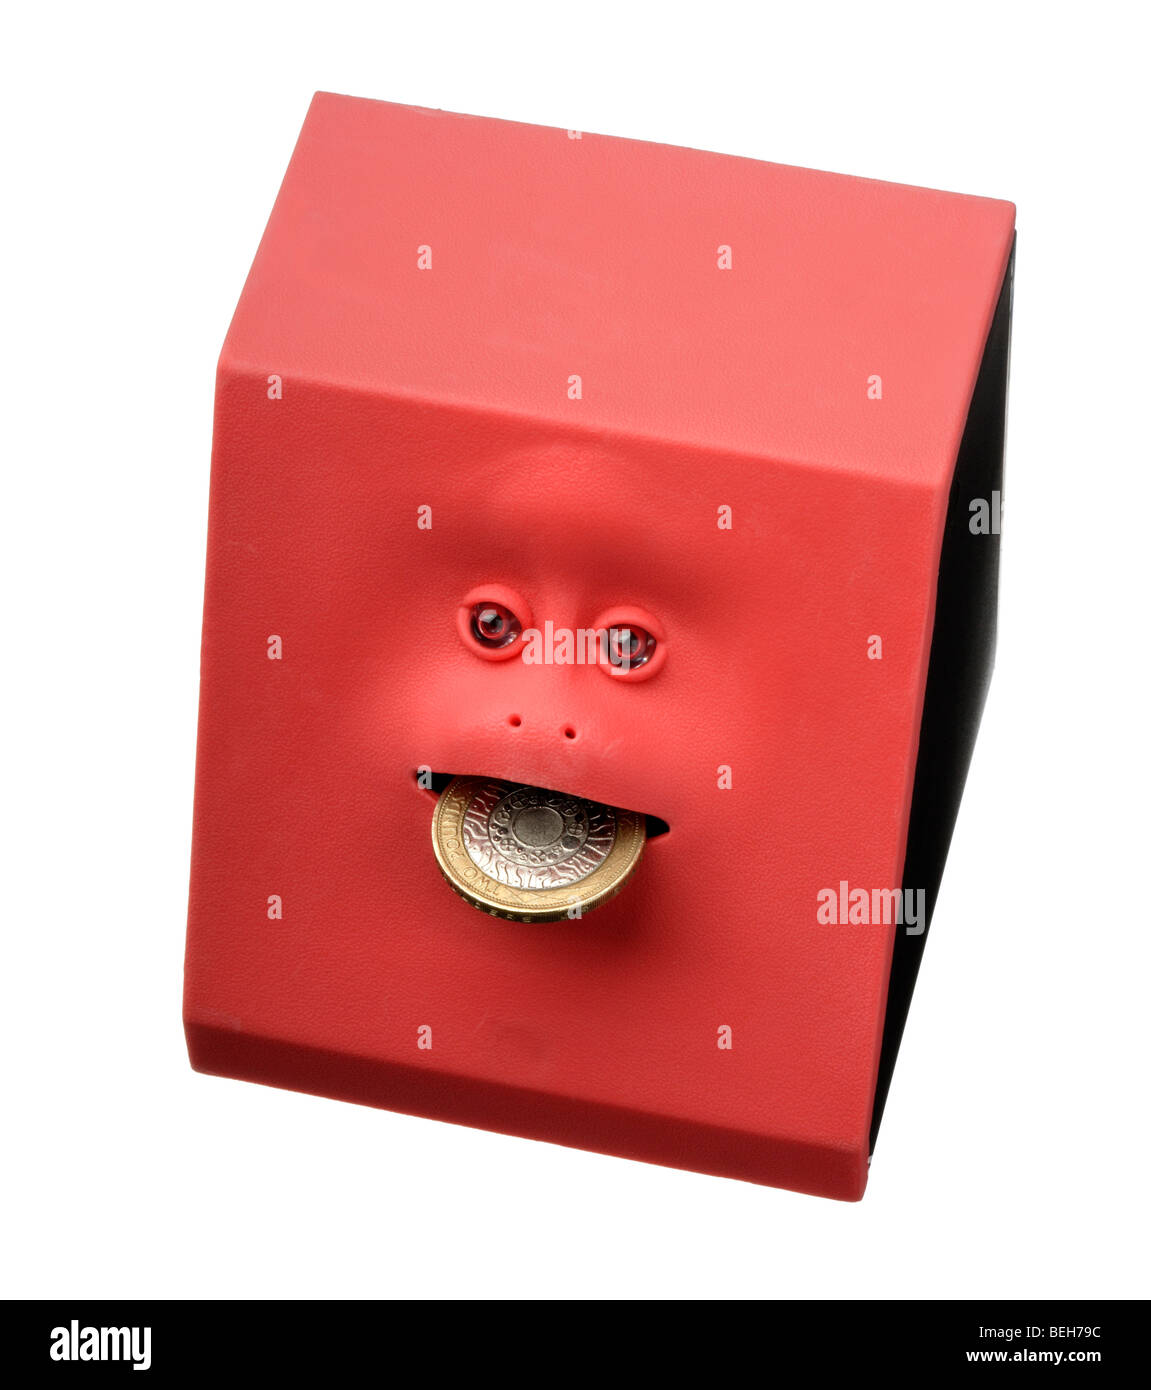 coin eating savings box toy - Stock Image